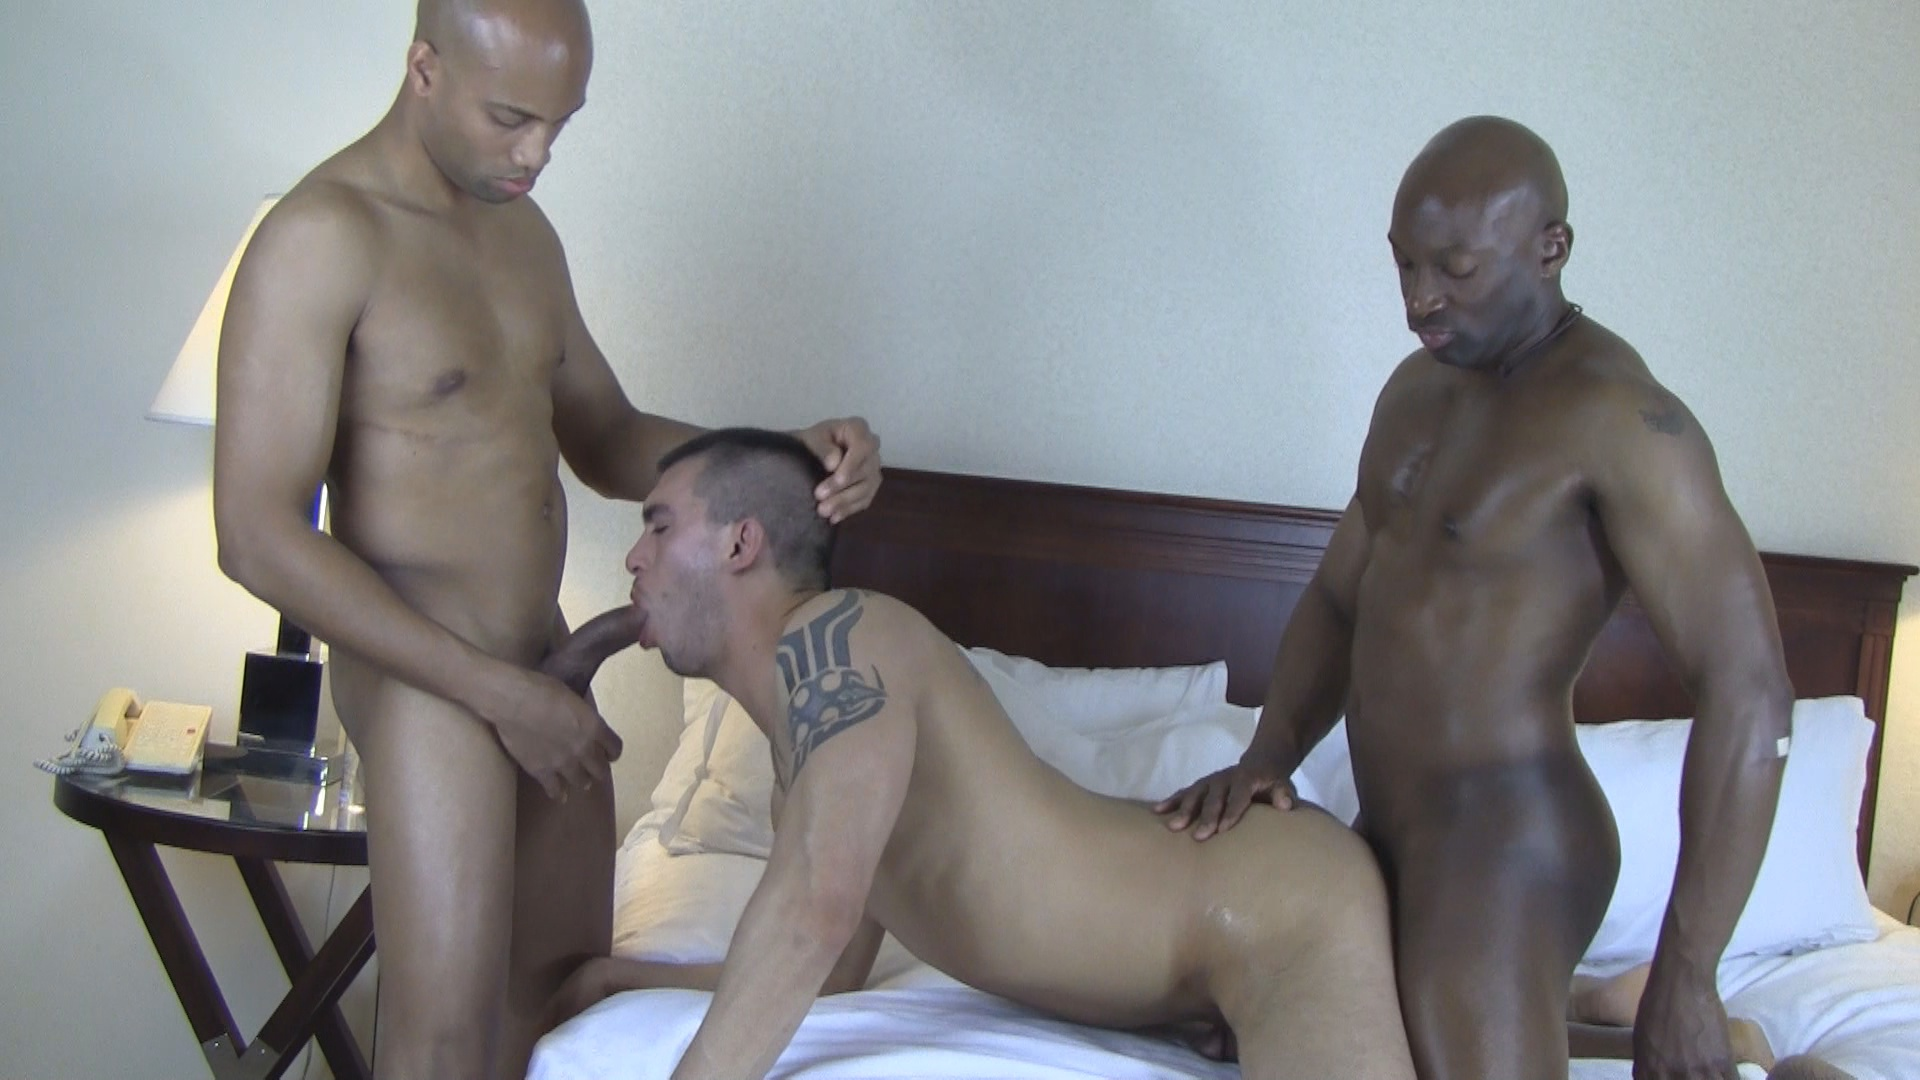 Creampies: The Urge To Breed 2 Xvideo gay